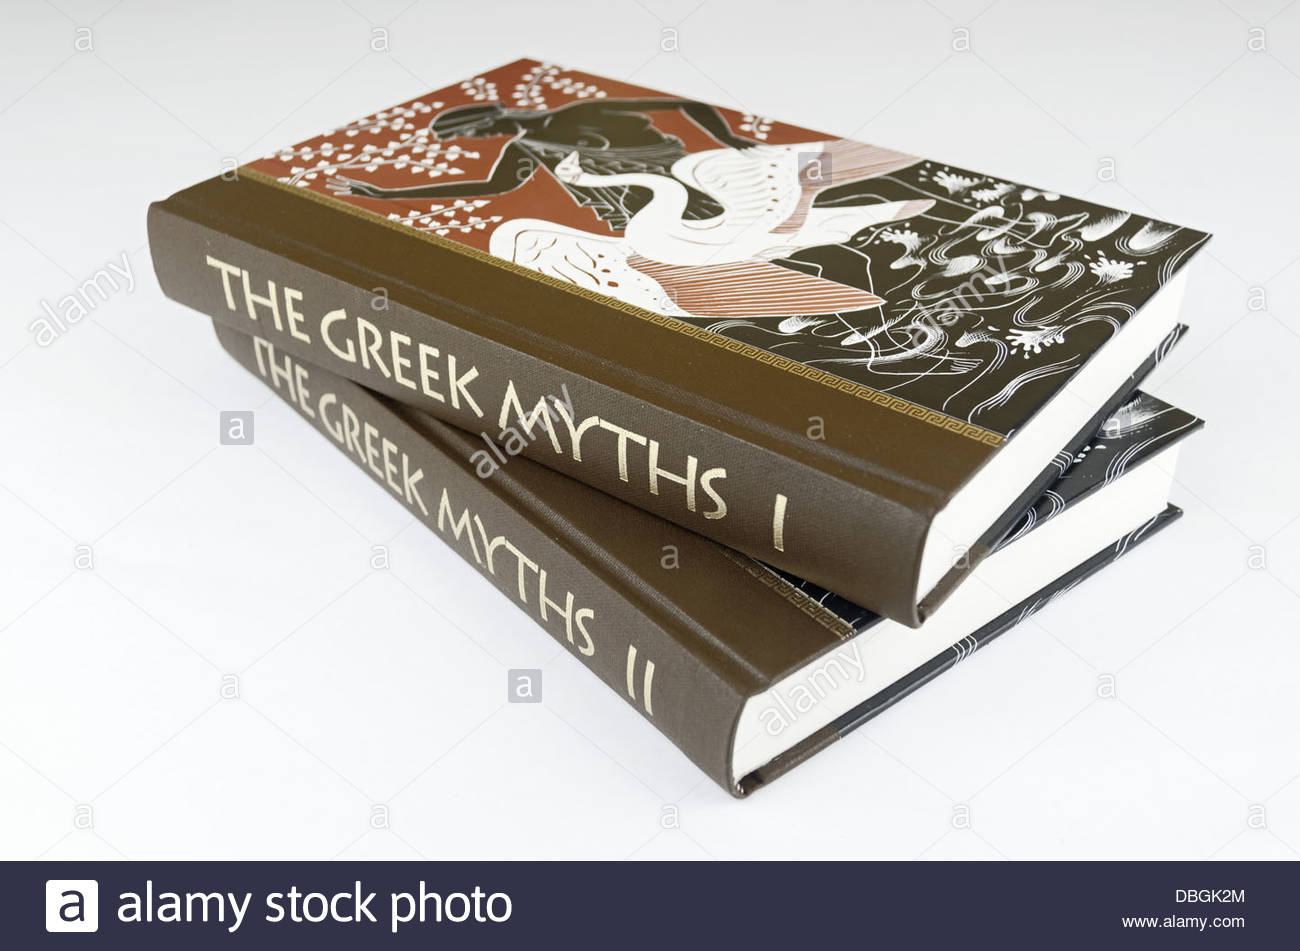 The Greek Myths, a compendium of Greek mythology, by the poet and writer Robert Graves. Published by The Folio Society. - Stock Image